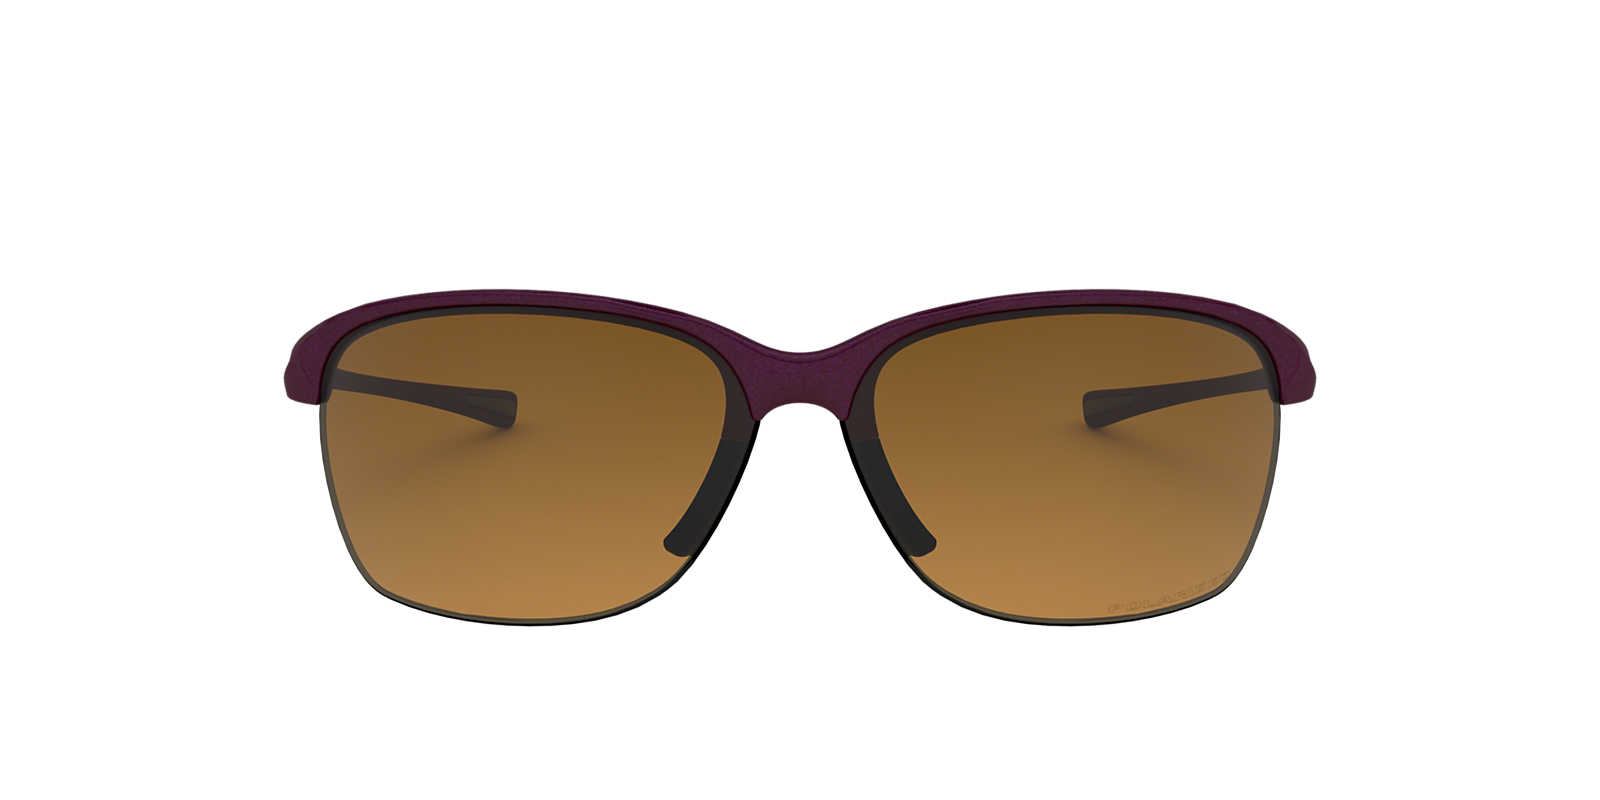 oakley womens dangerous asian fit sunglasses  oo9191 unstoppable oo9191 unstoppable · oakley women's